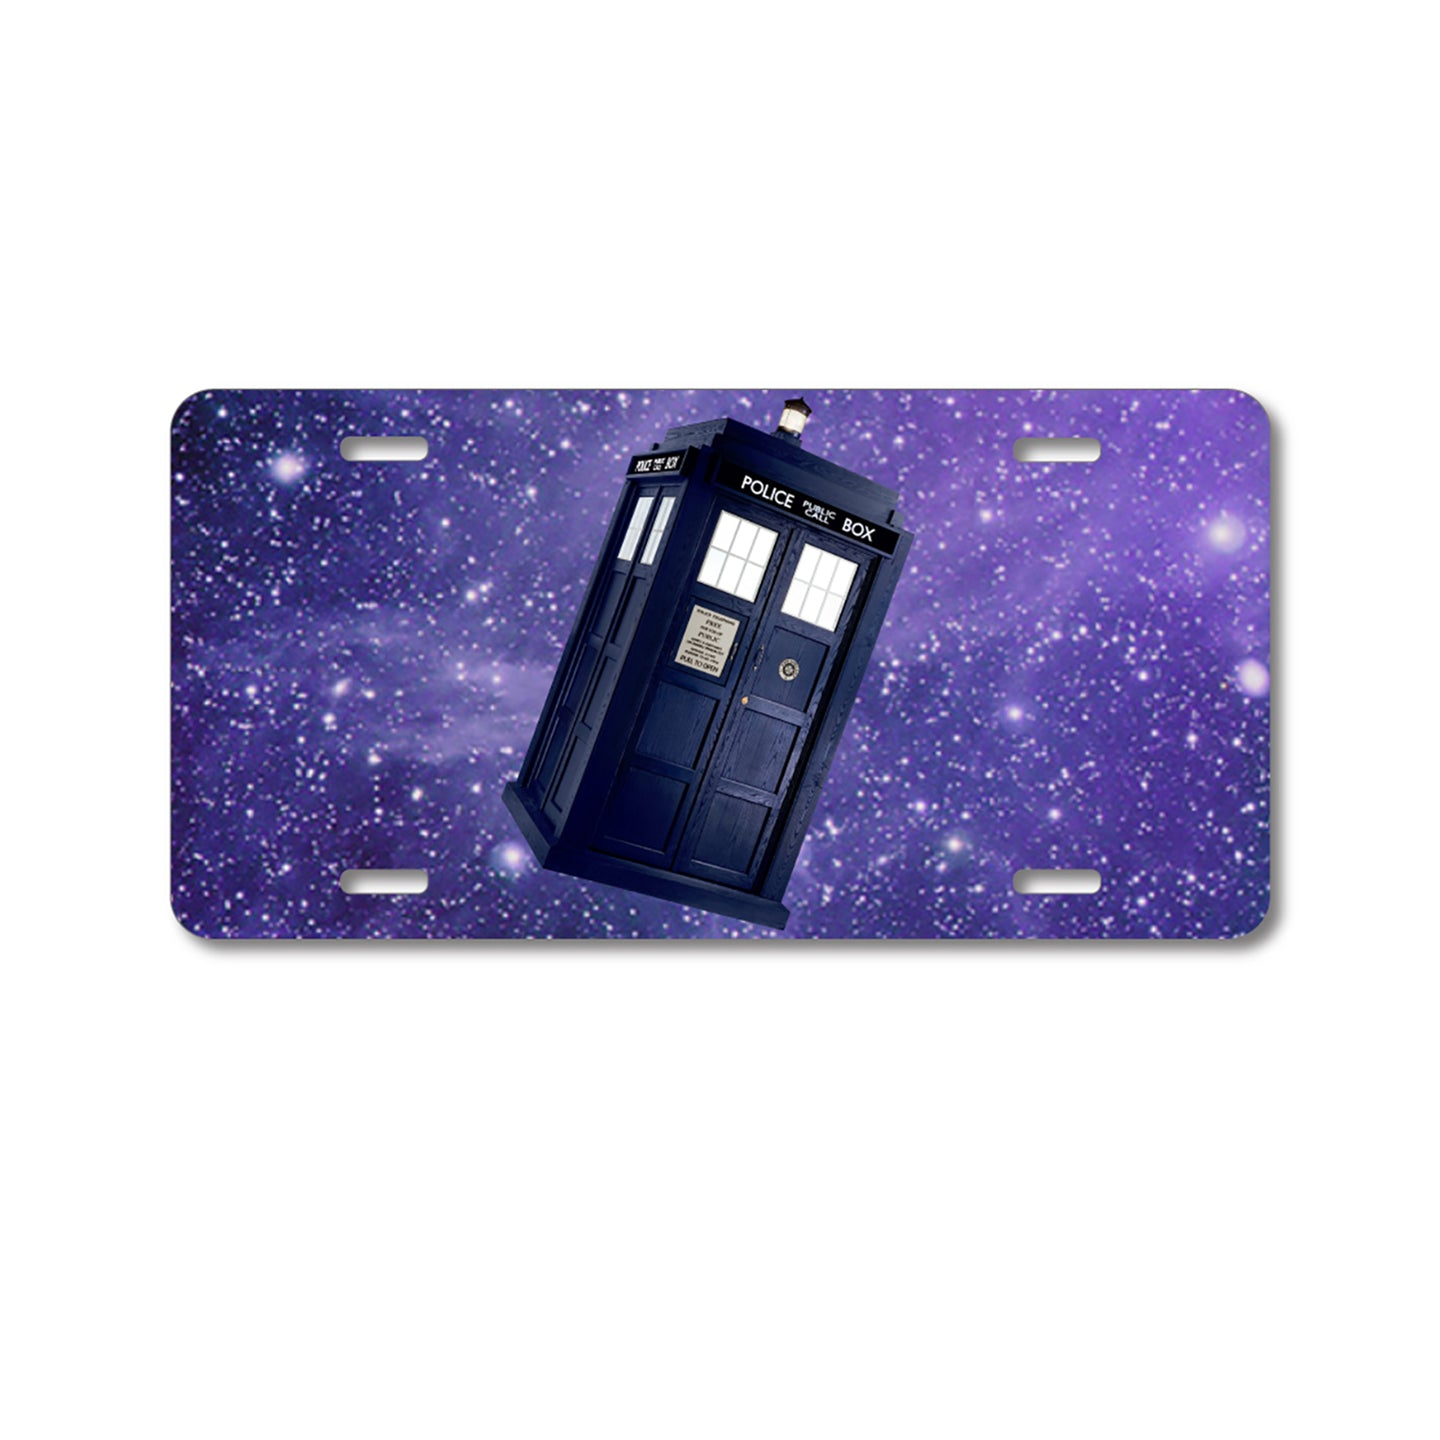 DistinctInk Custom Aluminum Decorative Vanity Front License Plate - TARDIS Floating in Space